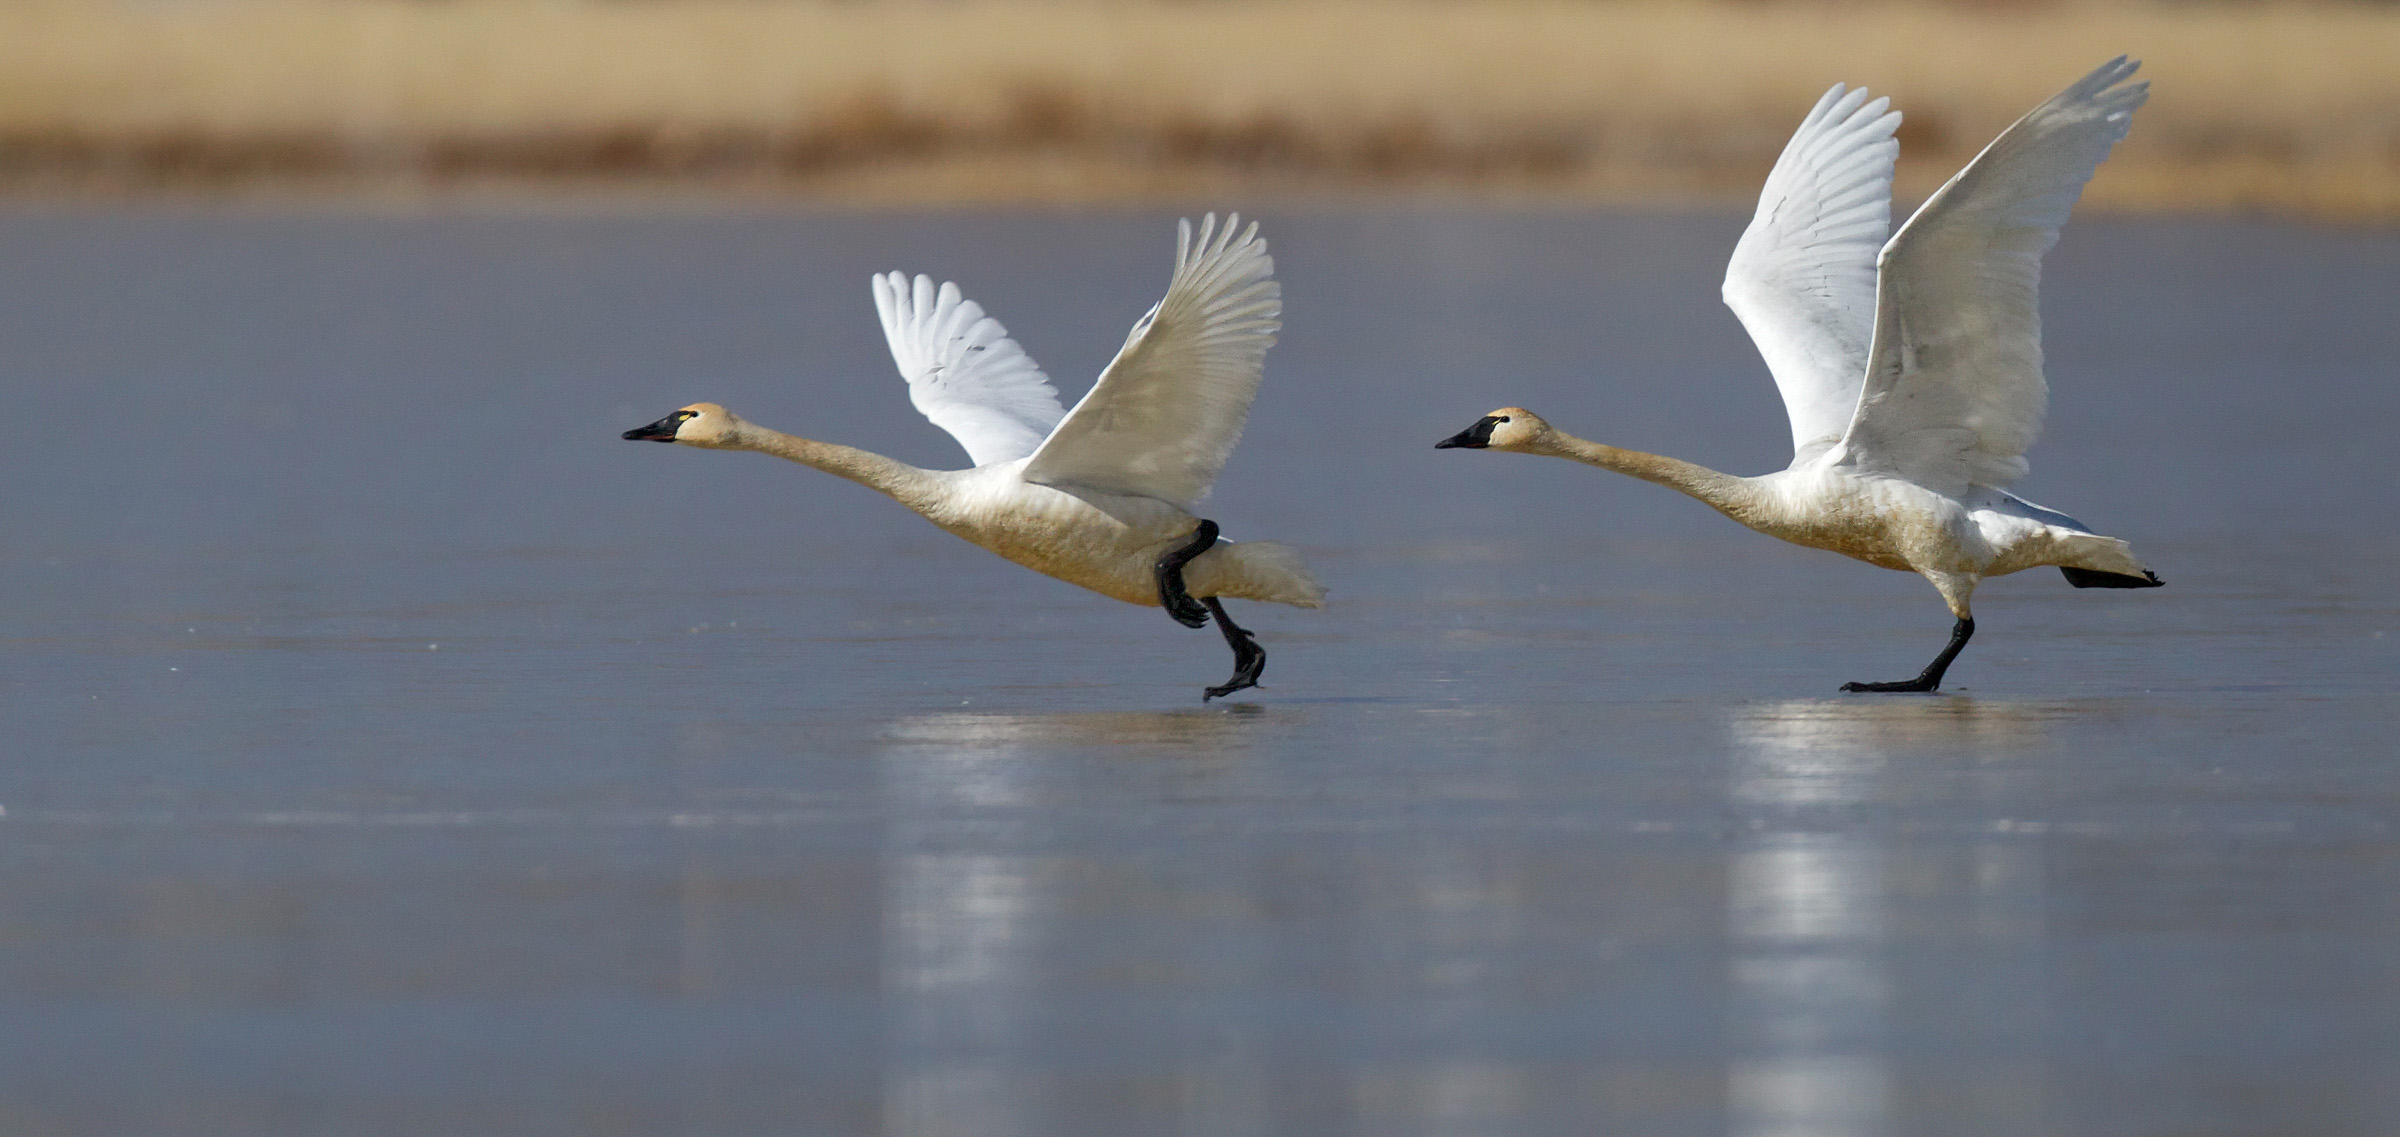 Tundra swan flight photos